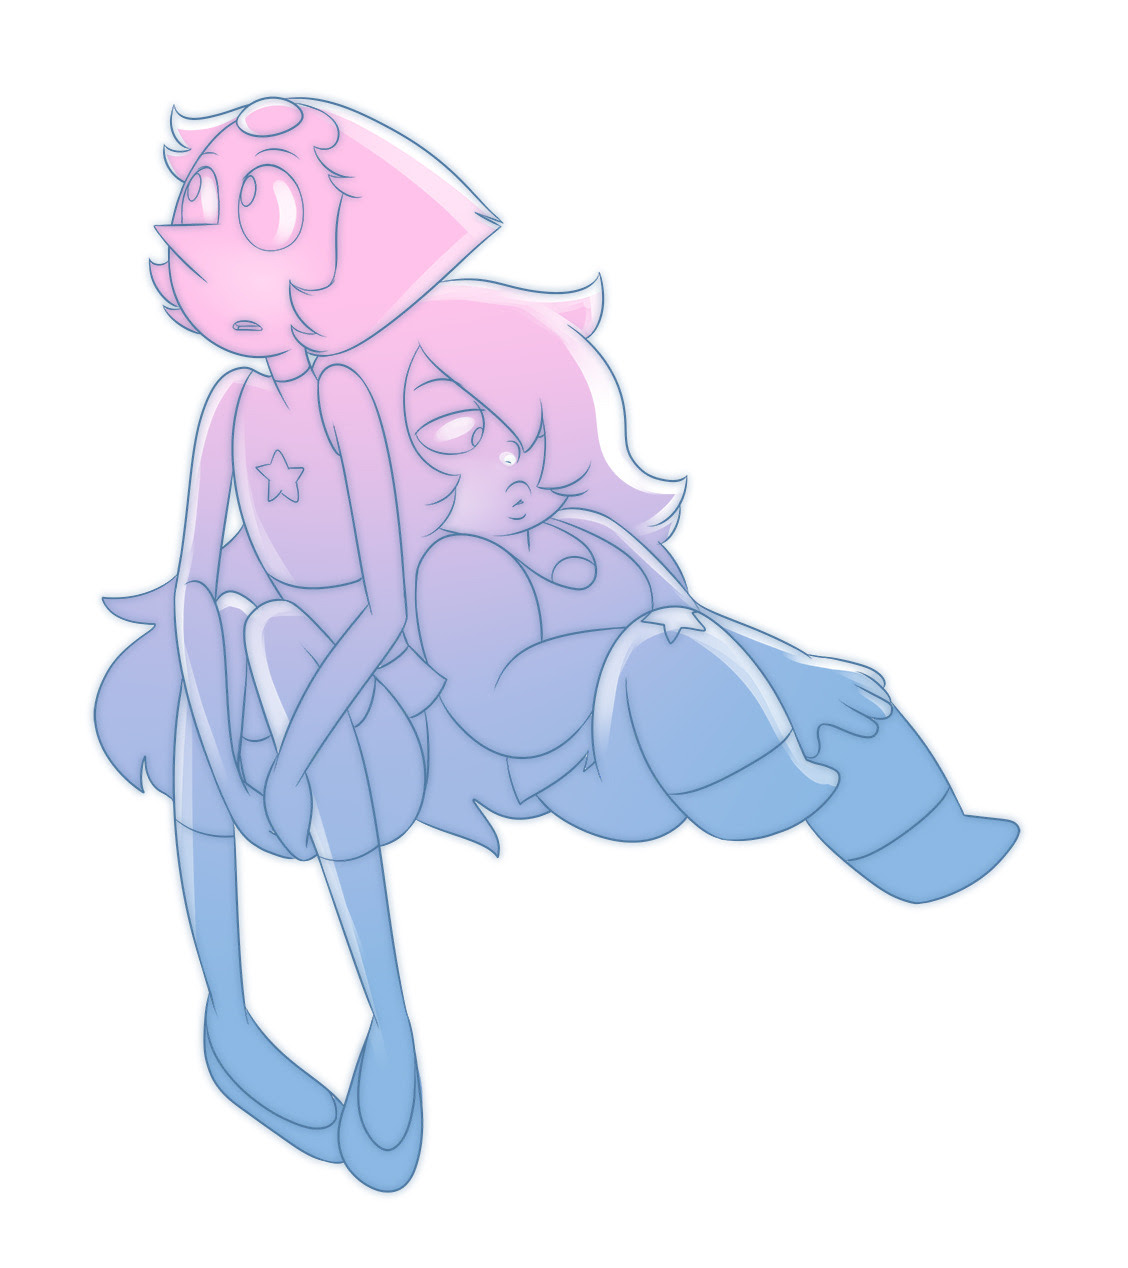 Pearlmethyst week 3: Free day Just chillin'. I'm a day behind! @annadesu